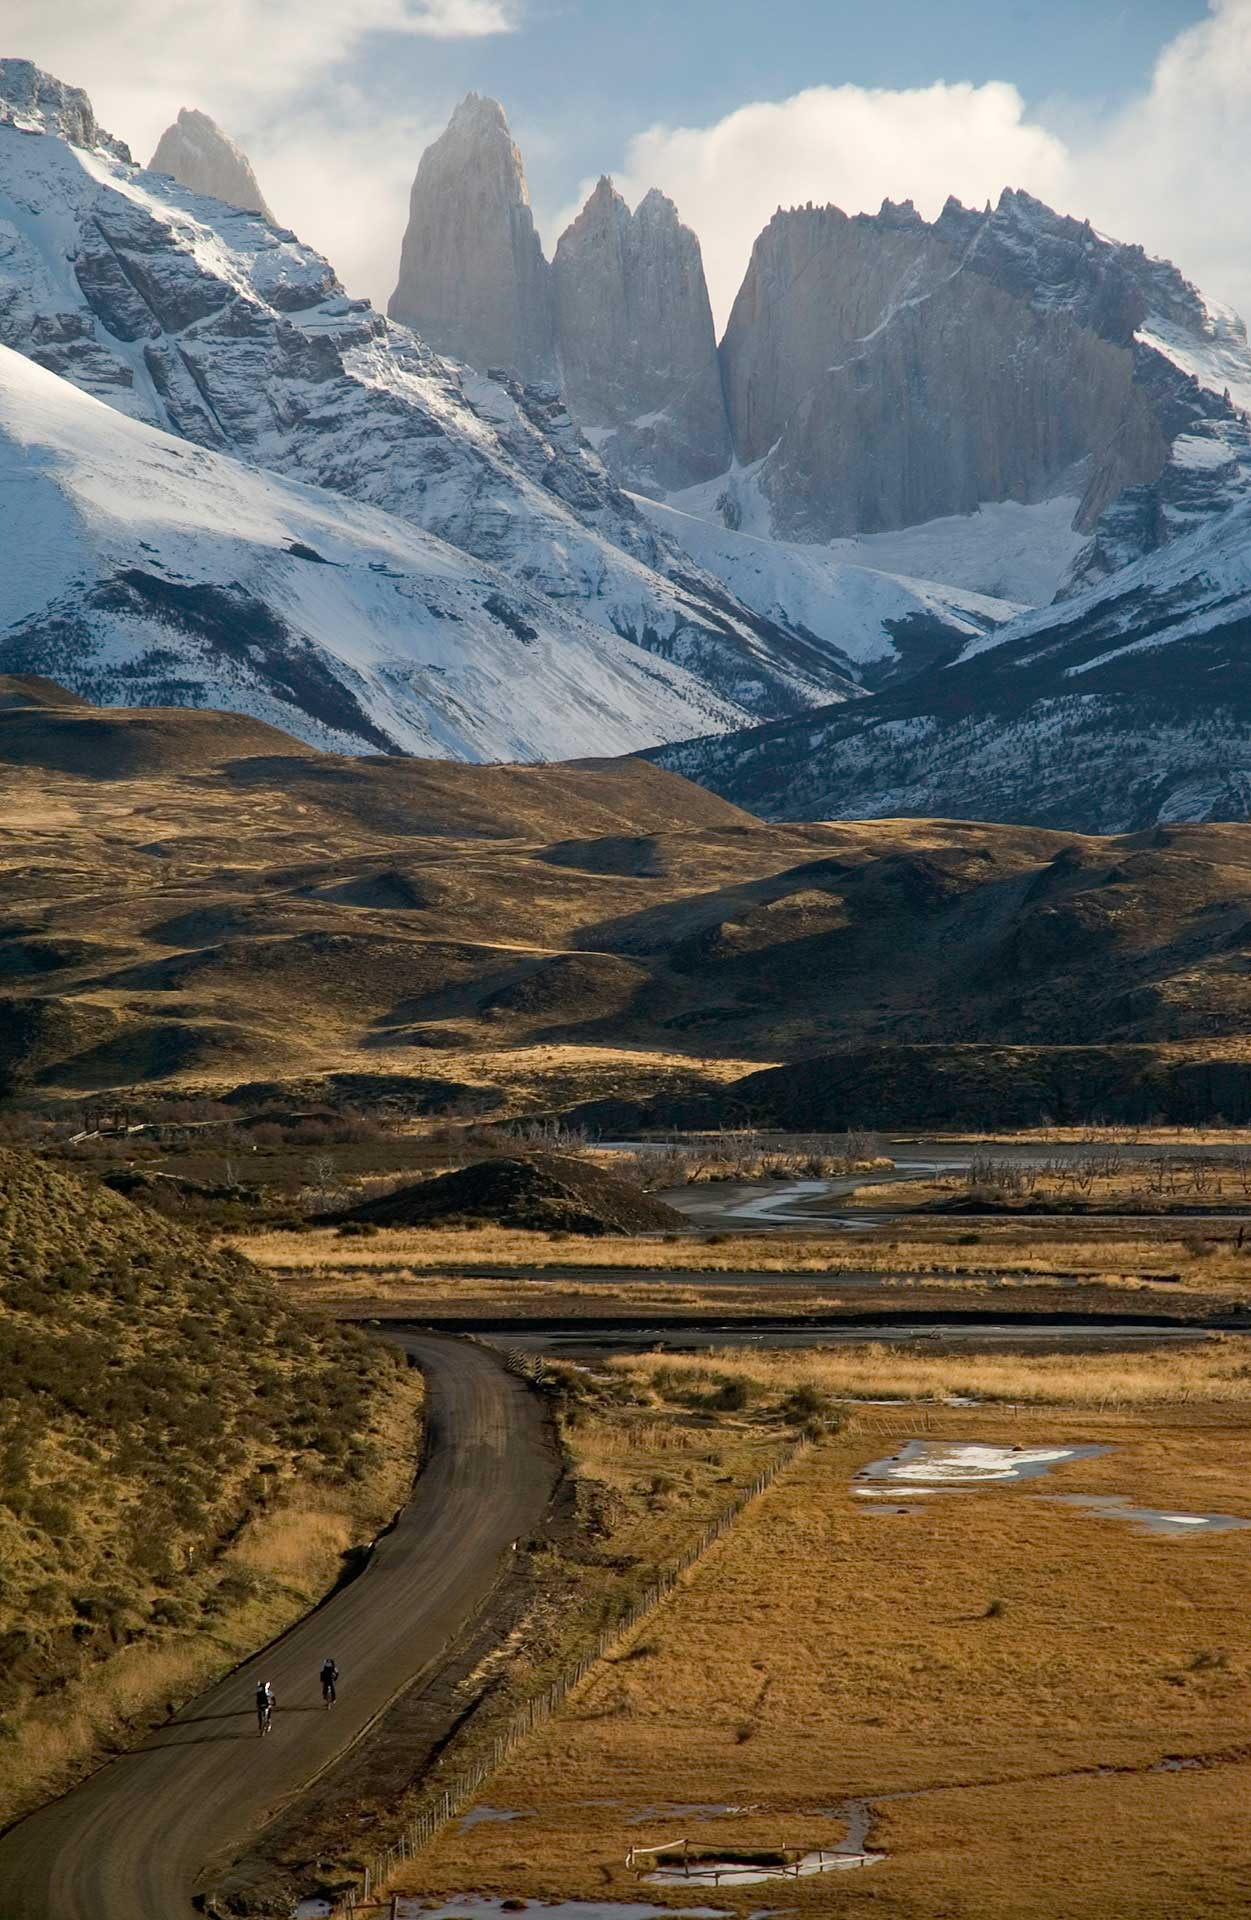 Aerial view of cyclists on a dirt road with snow covered mountains in the distance in Patagonia